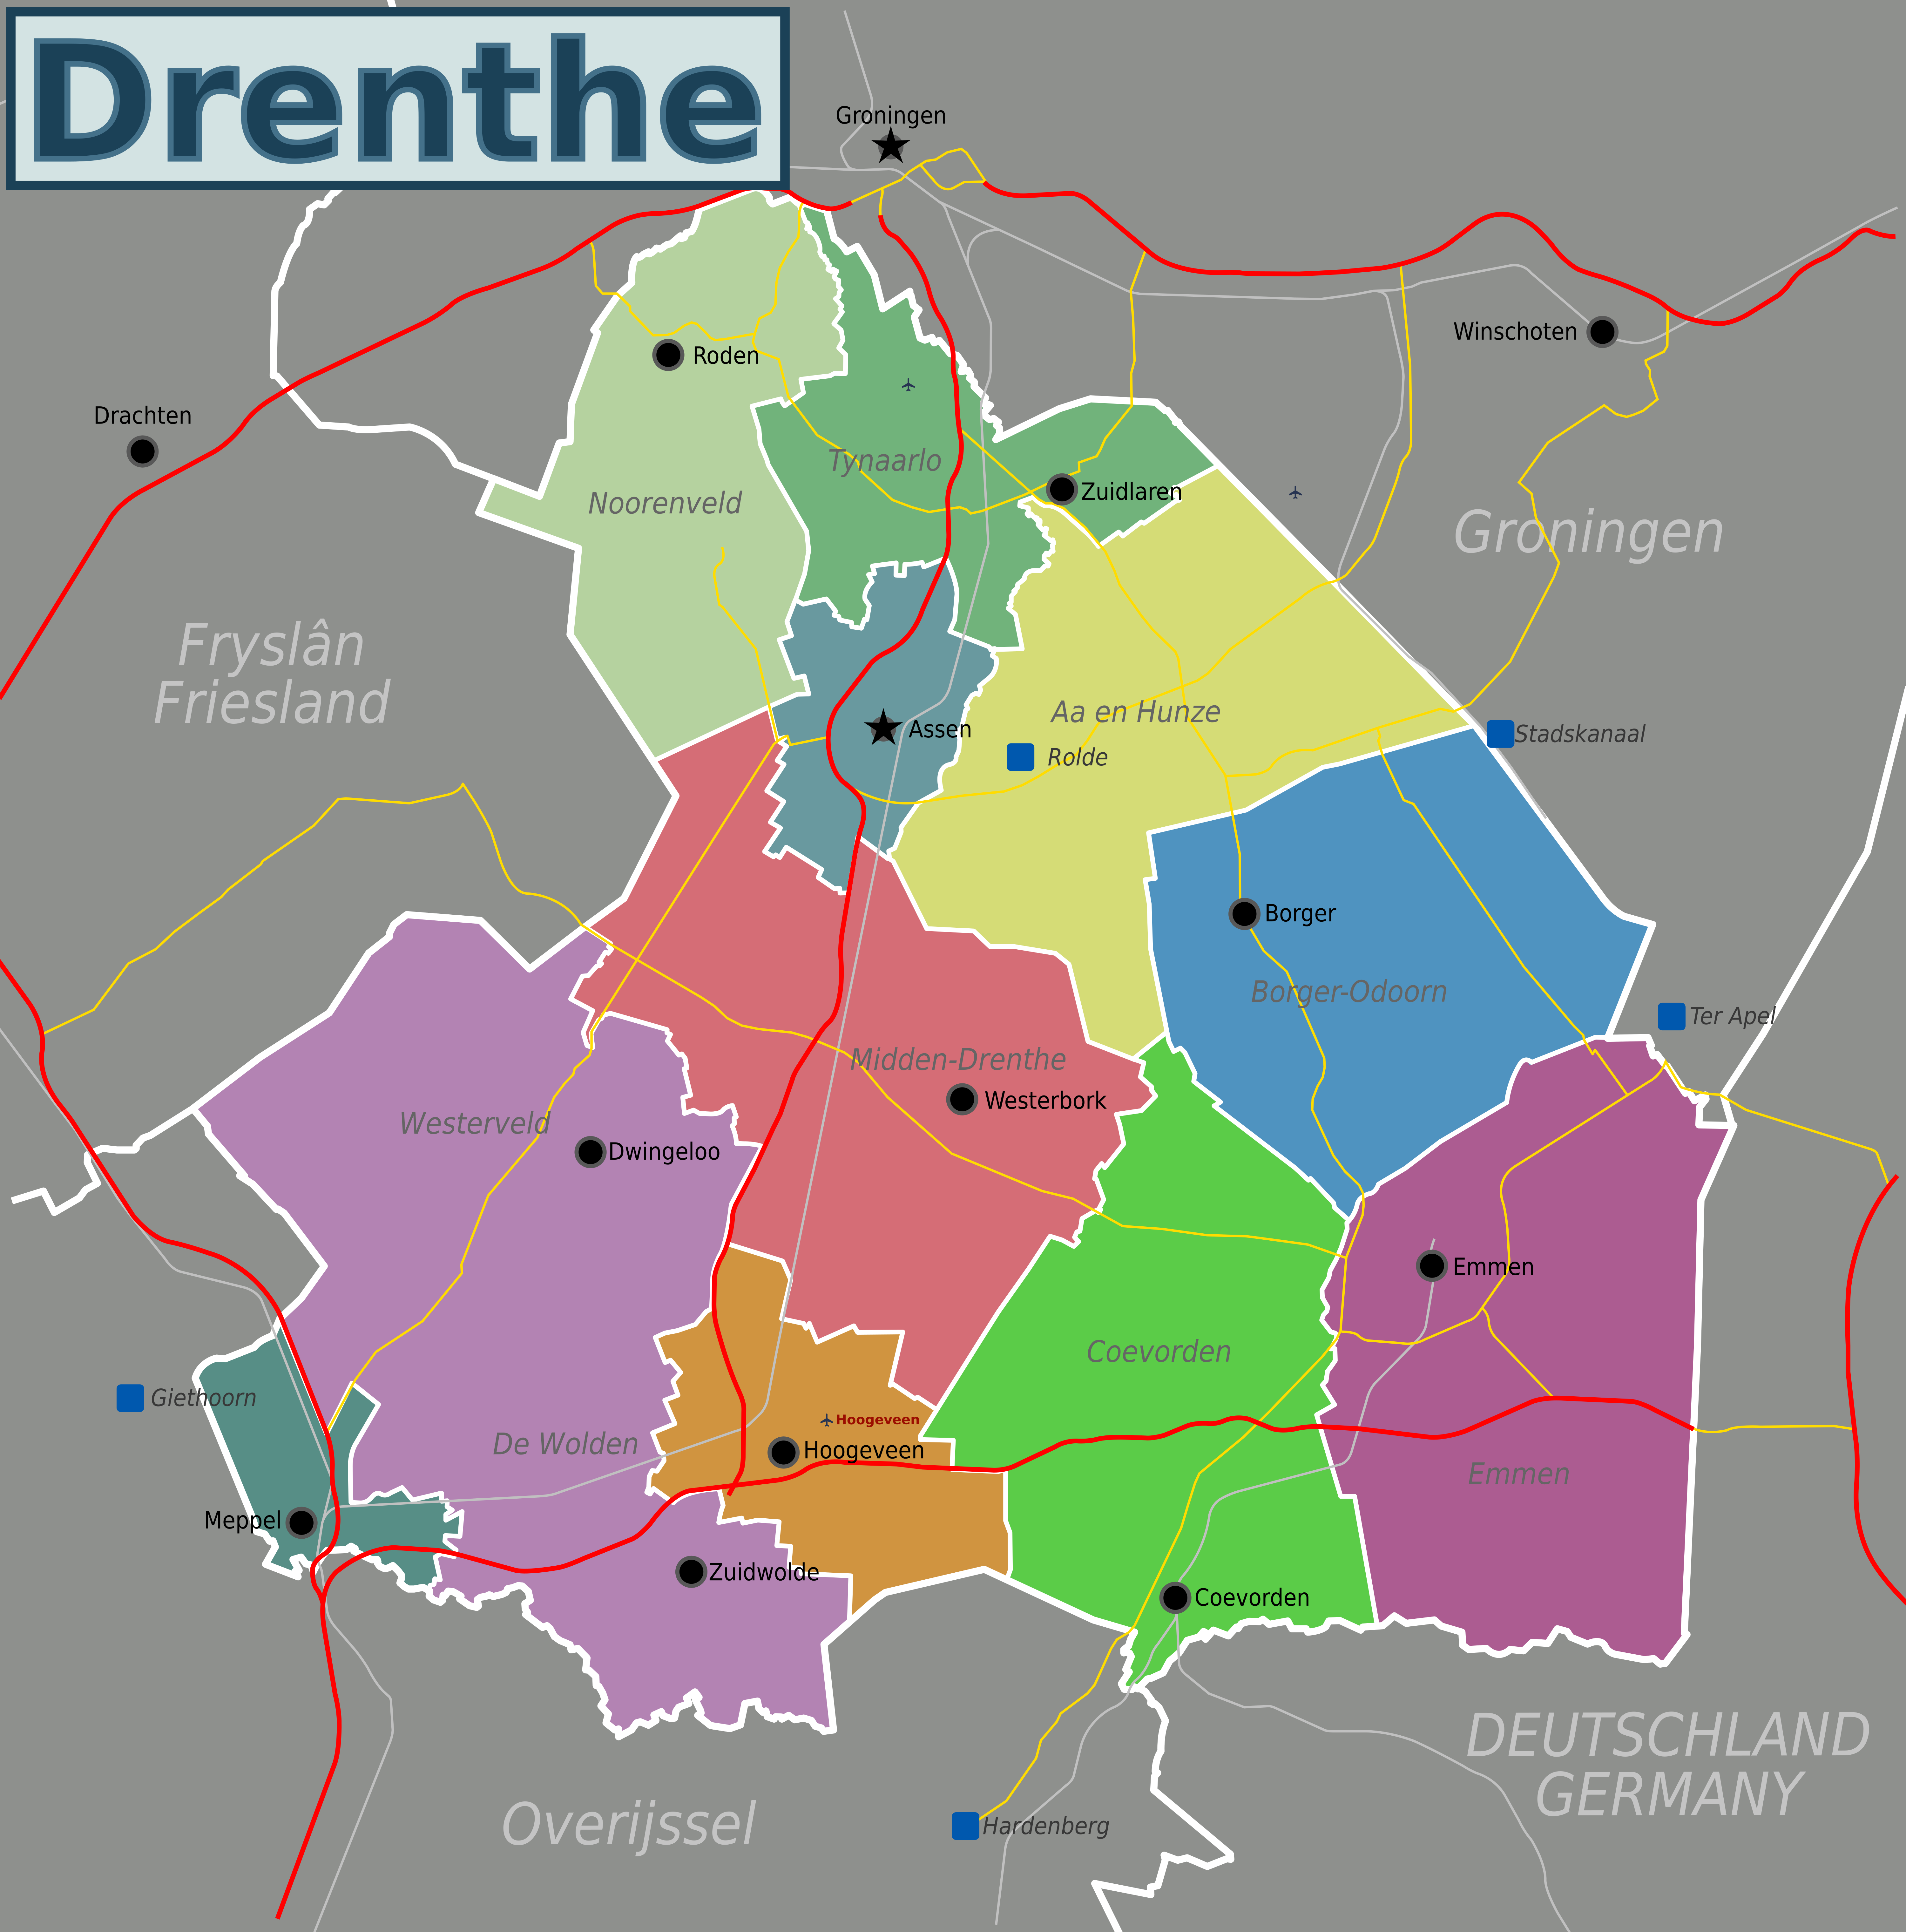 Map of the Dutch province of Drenthe Netherlands created for use on